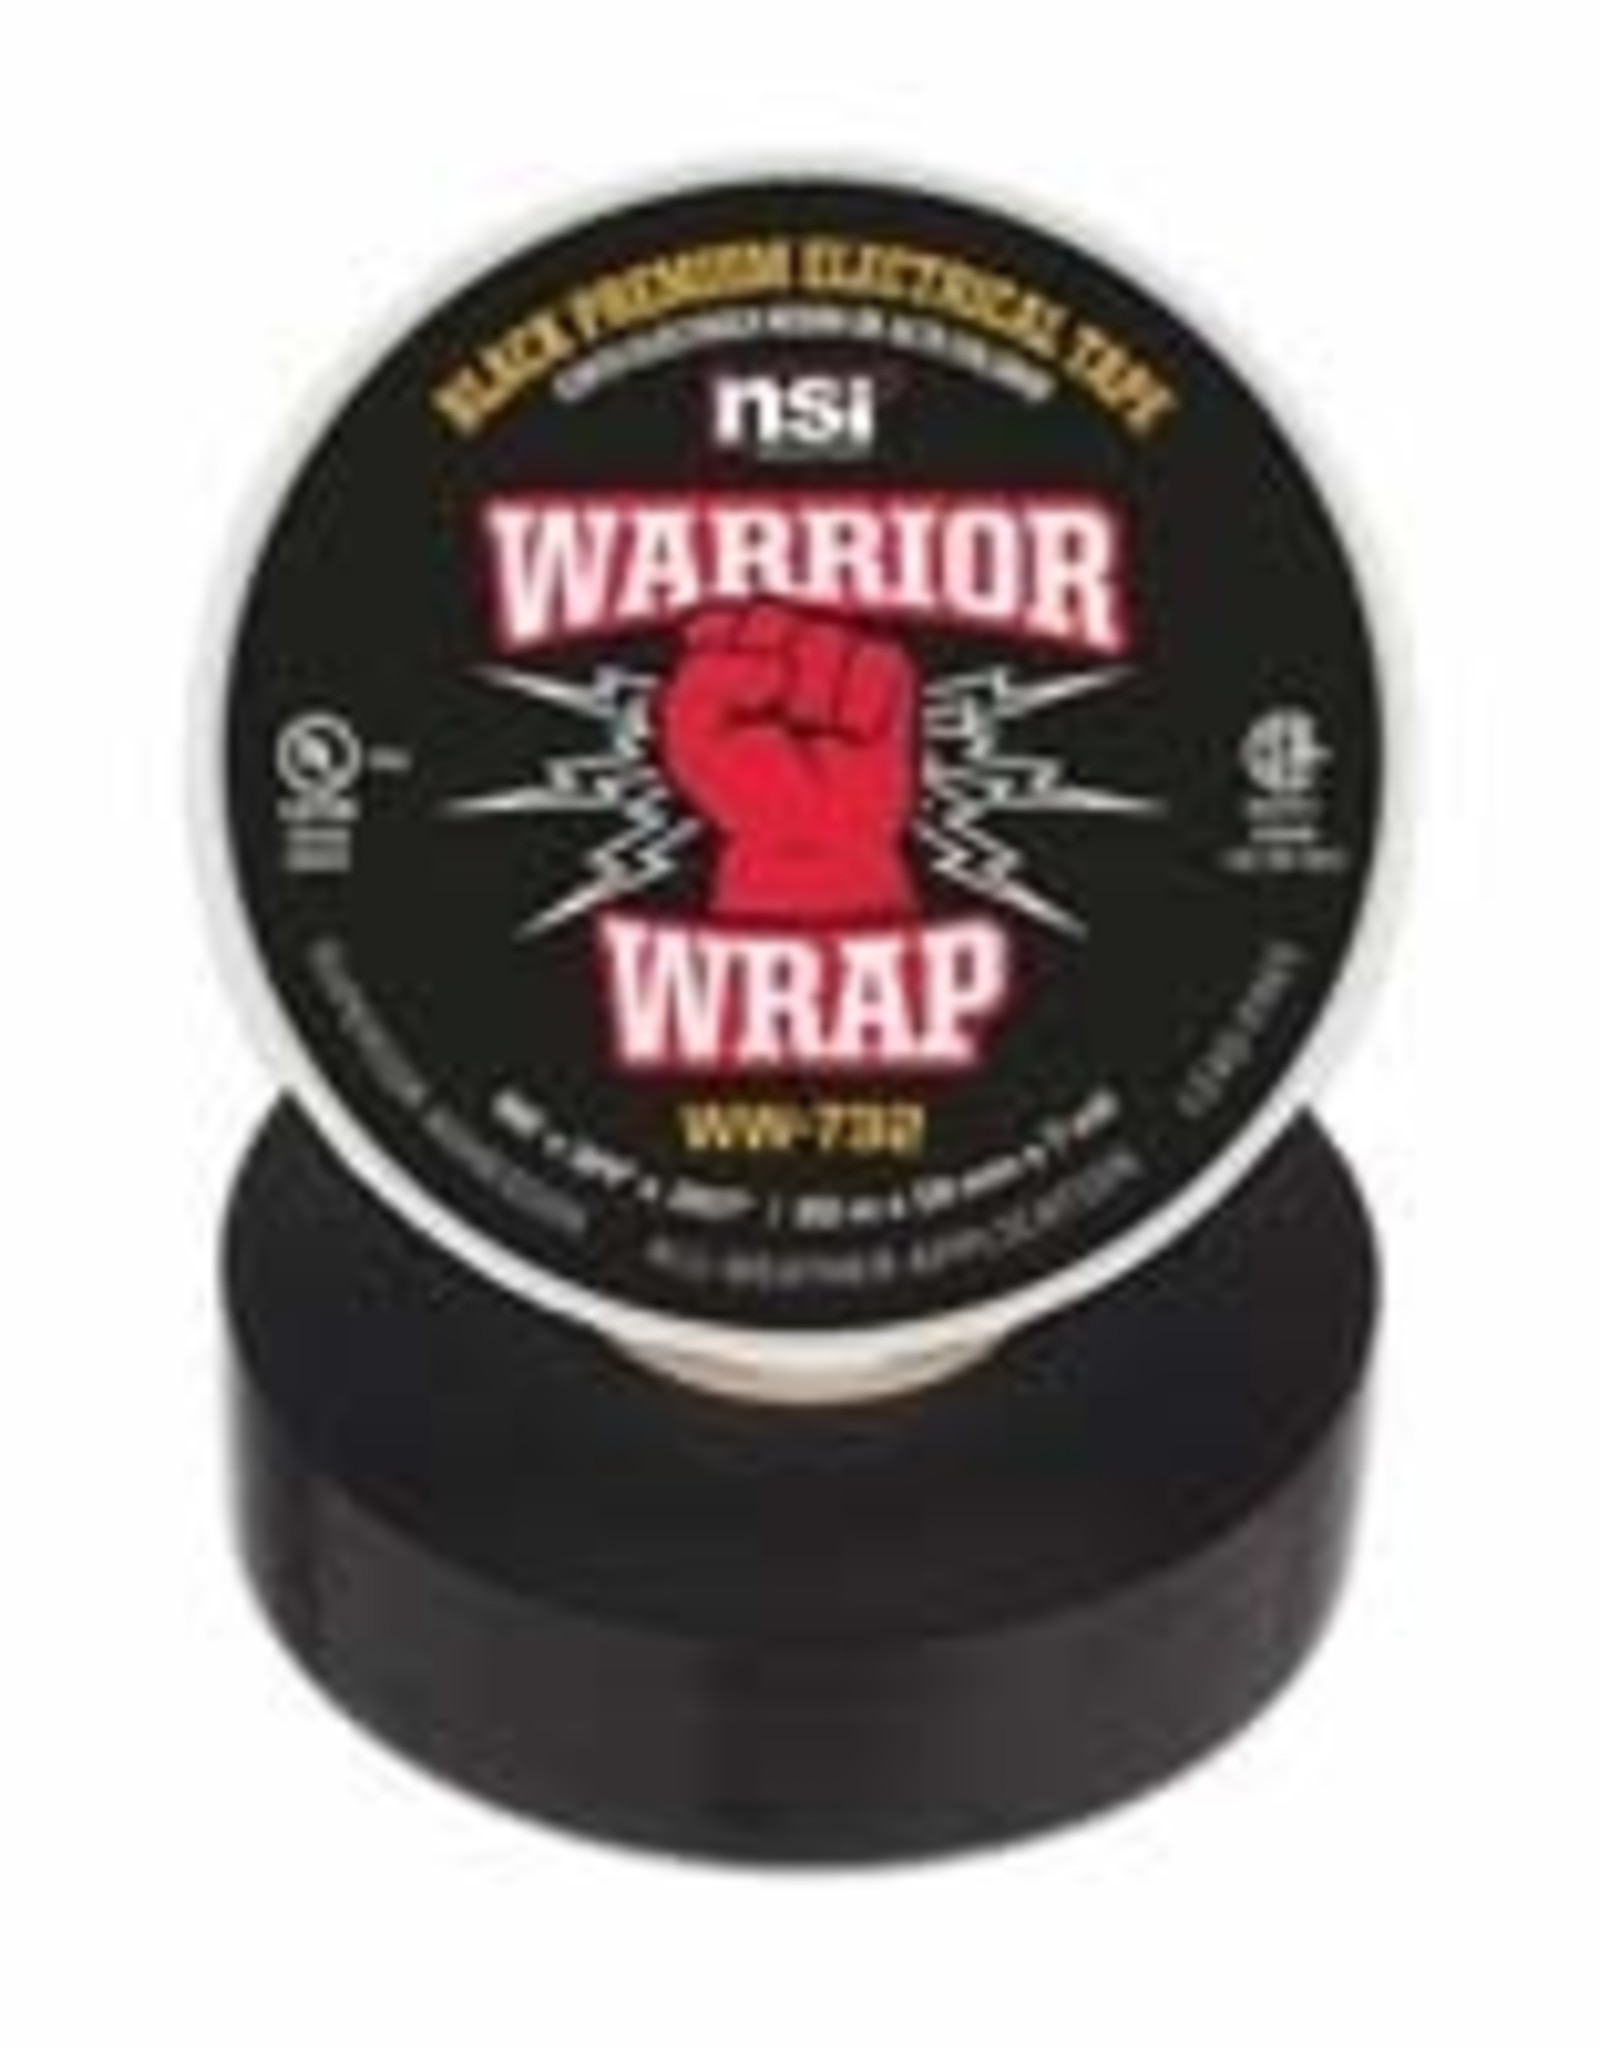 NSI Industries Warrior Wrap Electrical Tape UL Listed 3/4 x 66